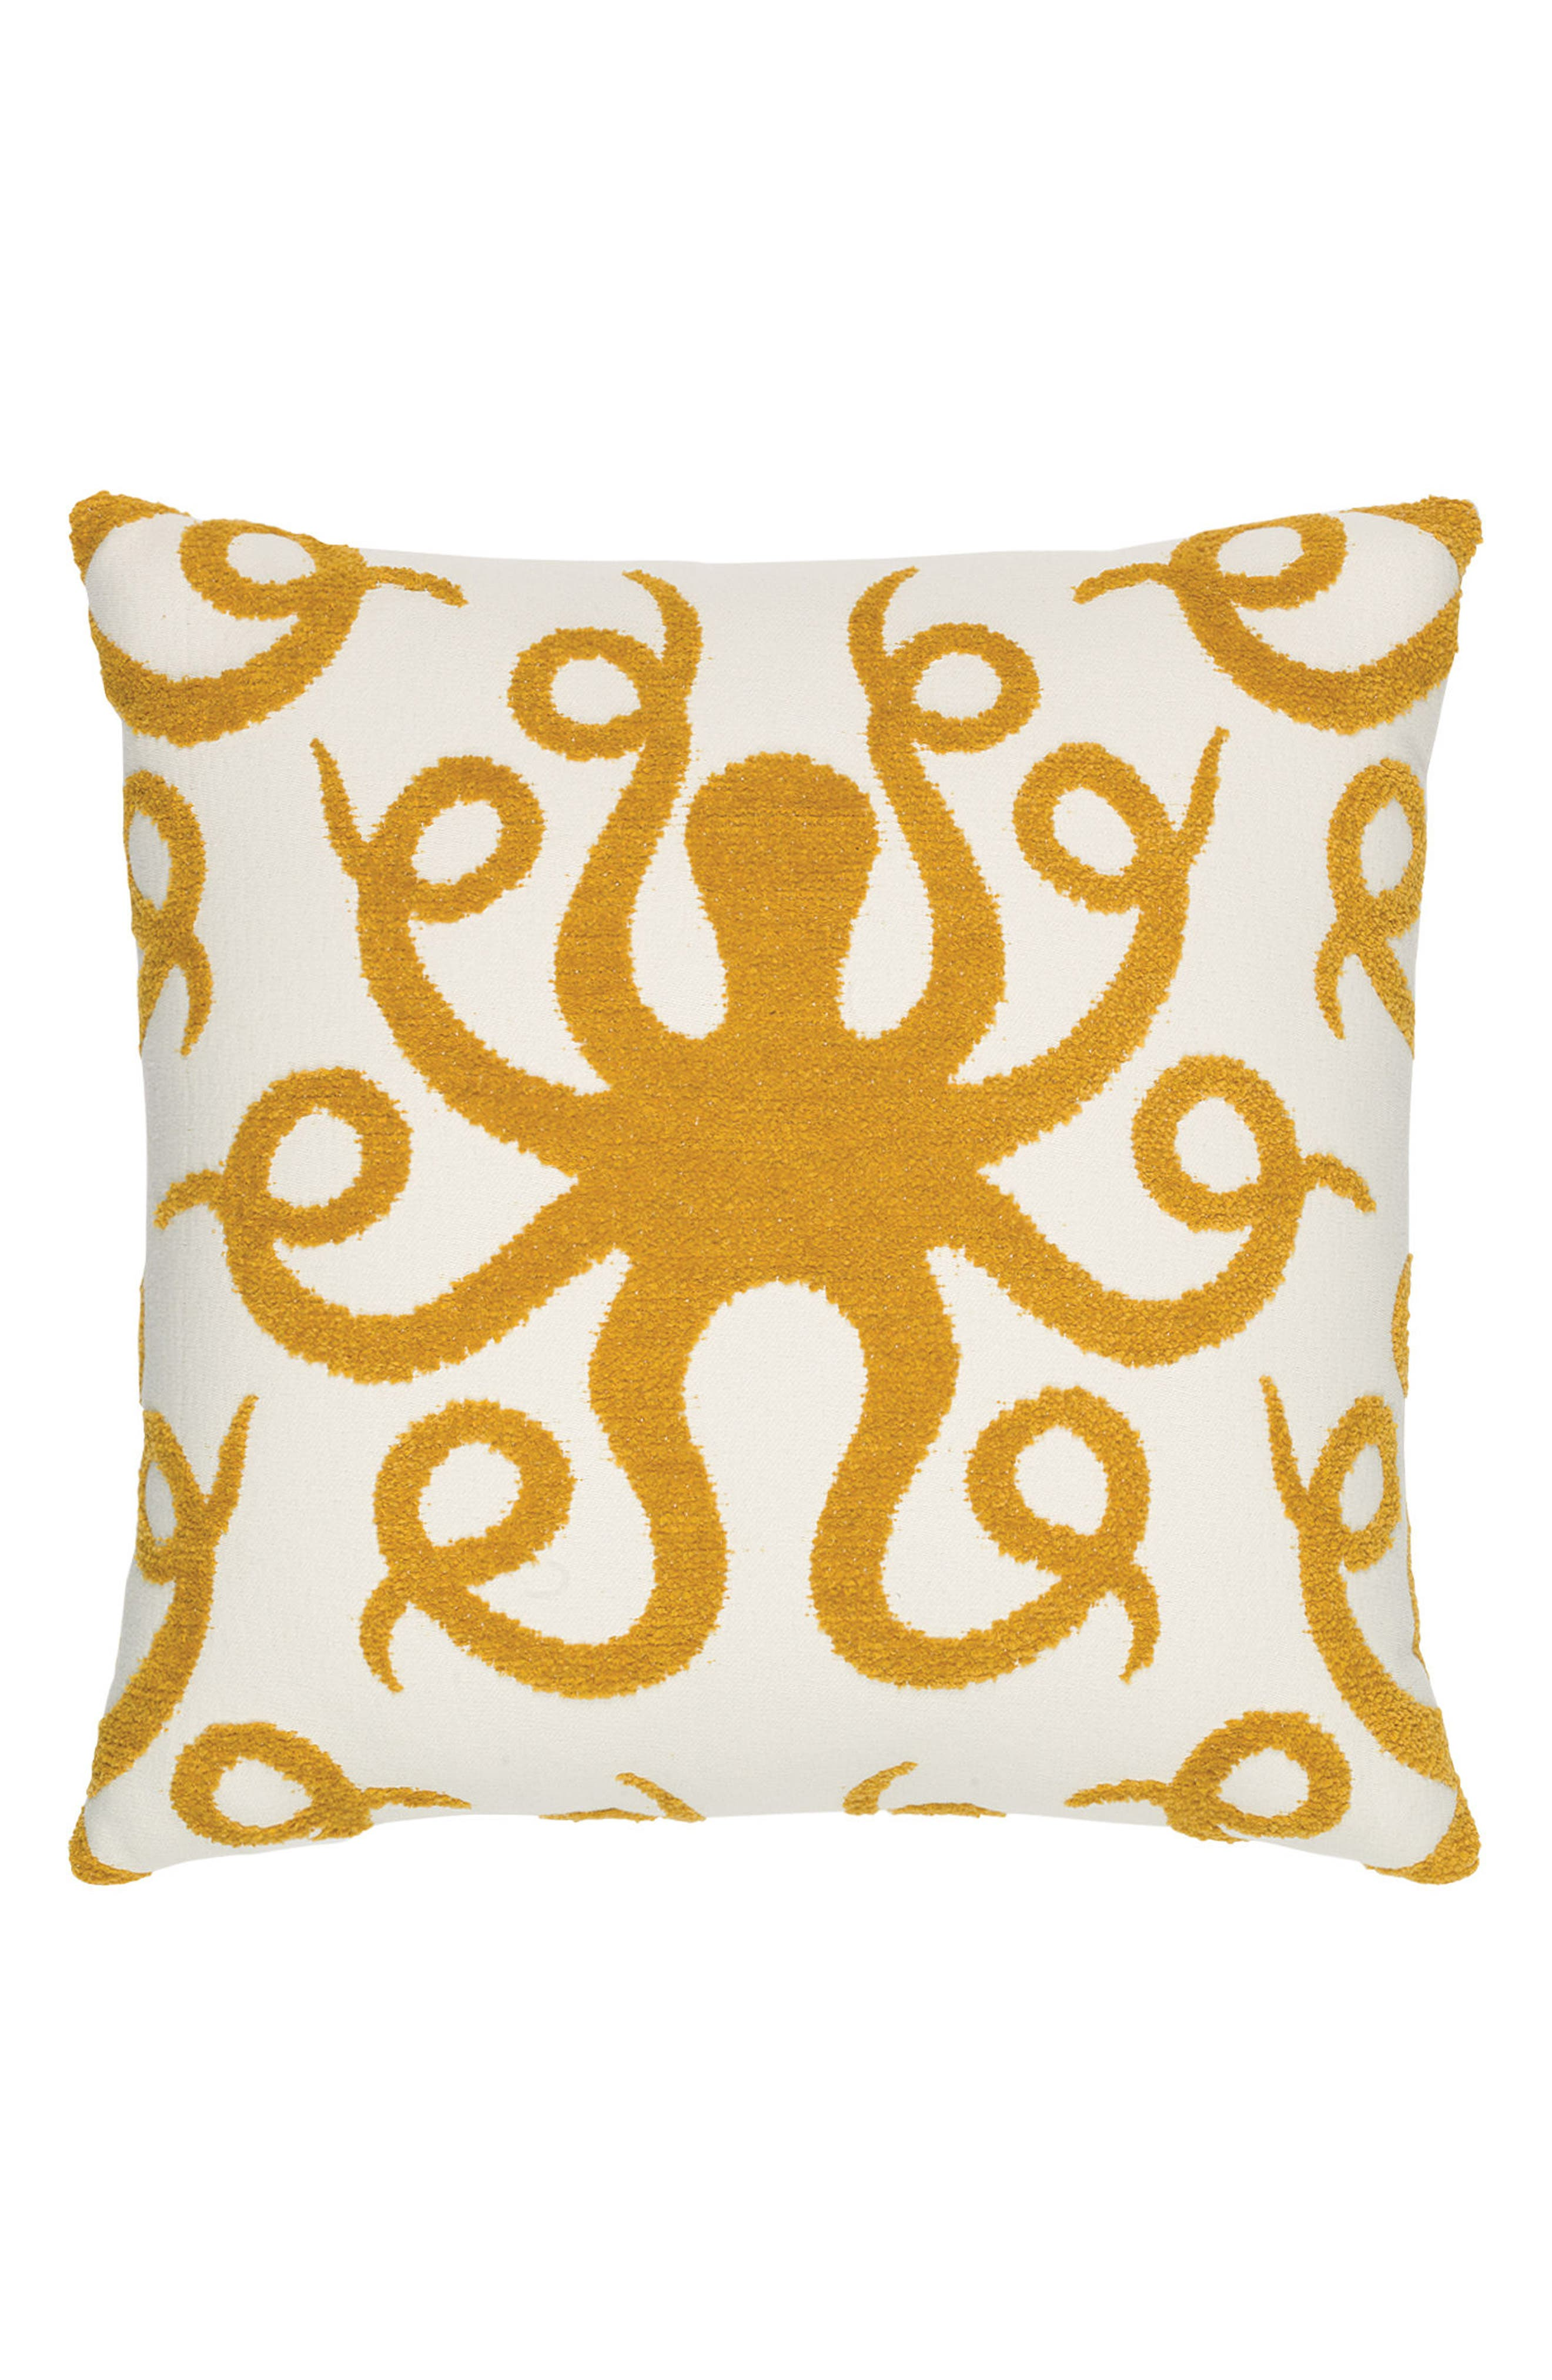 Octoplush Indoor/Outdoor Accent Pillow,                         Main,                         color, Gold/ White